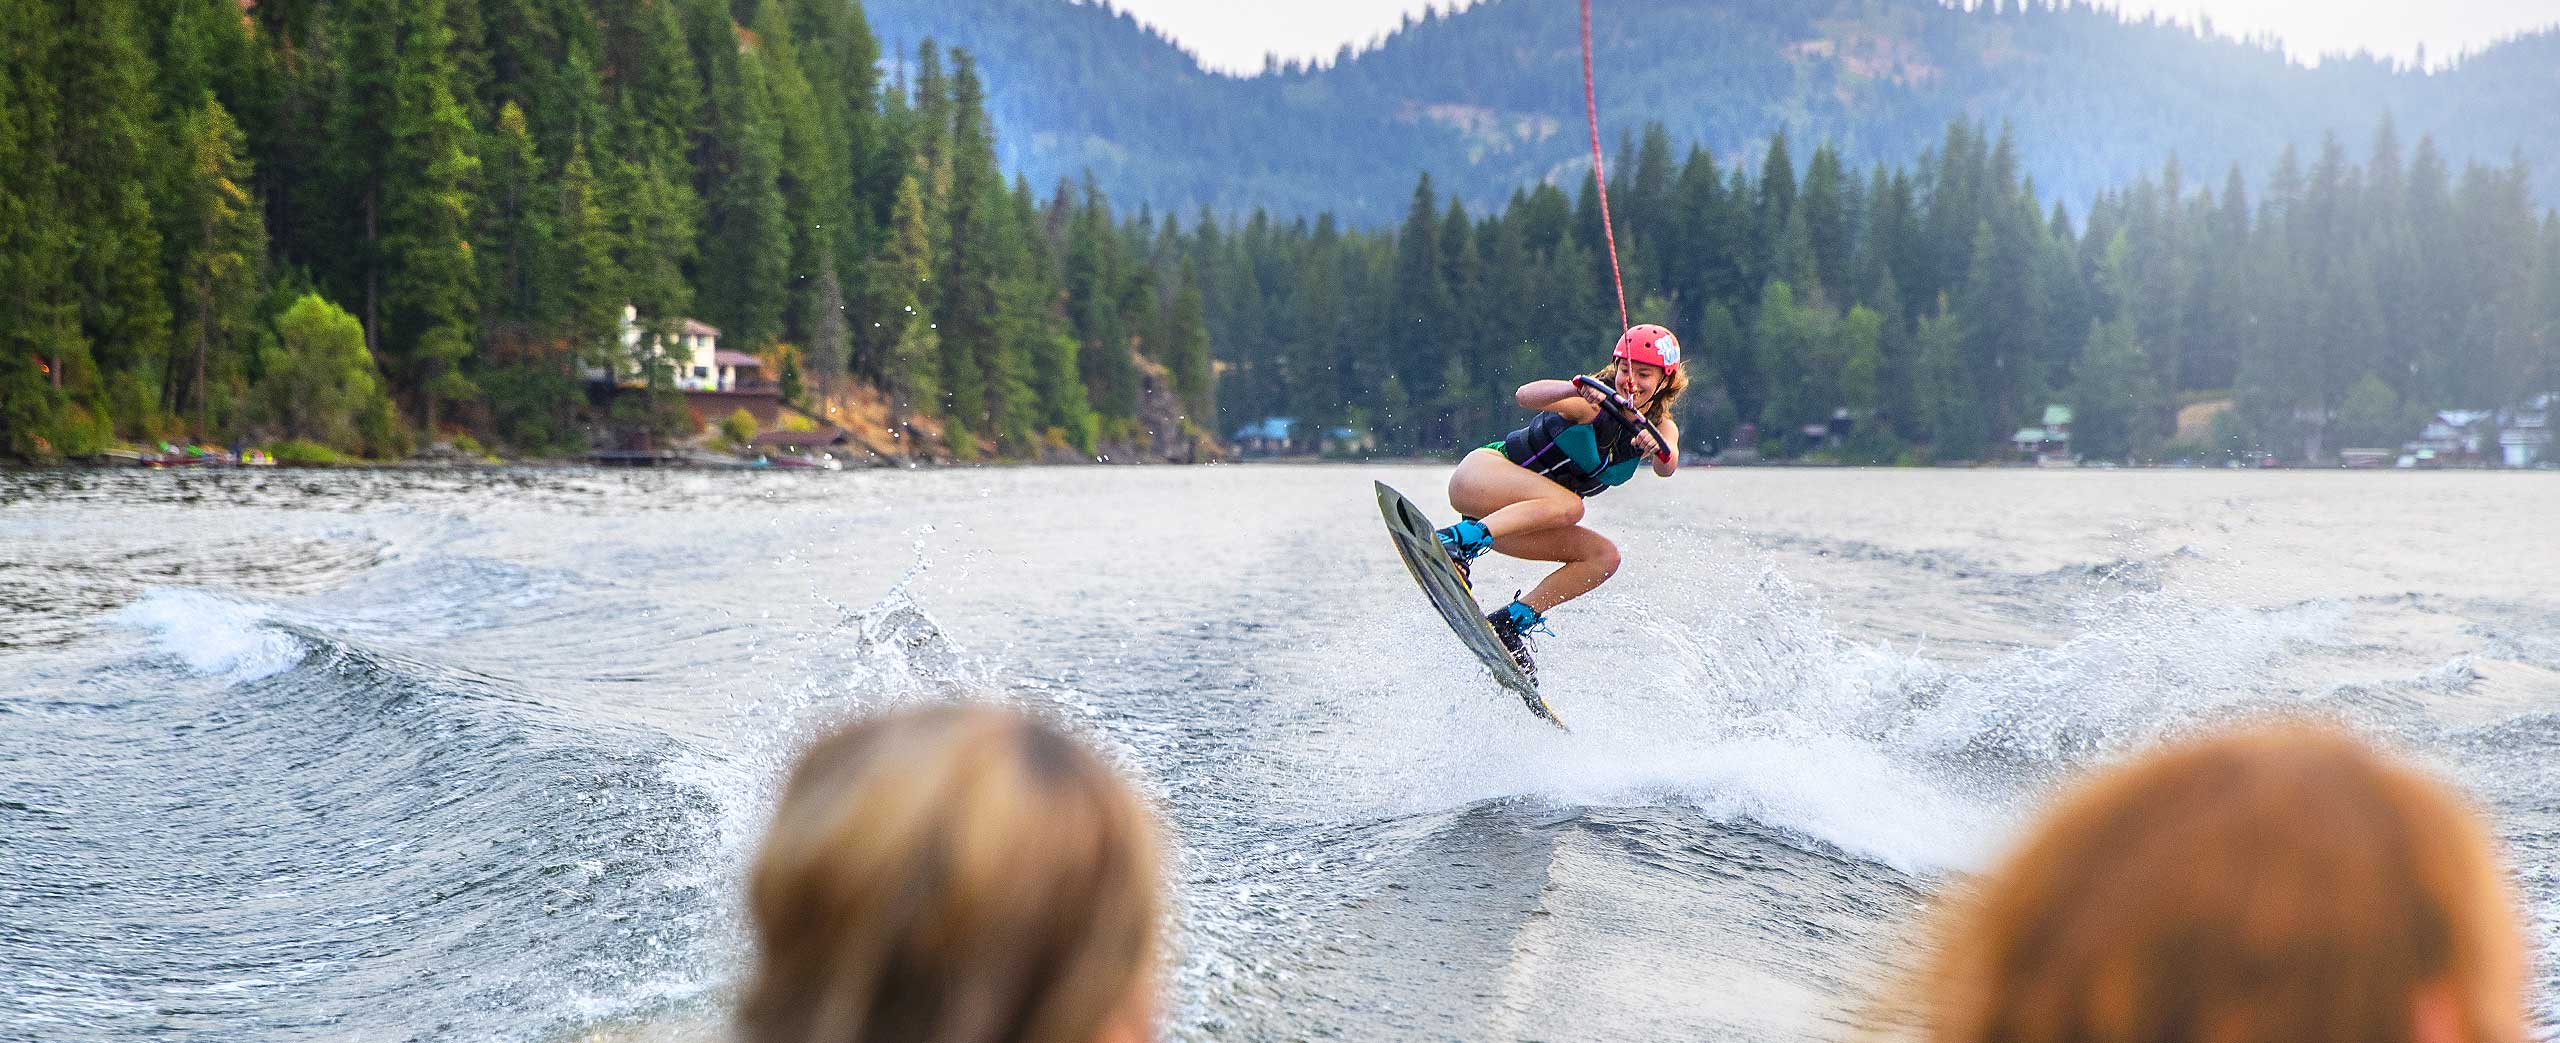 High school water sports camper jumping the wake